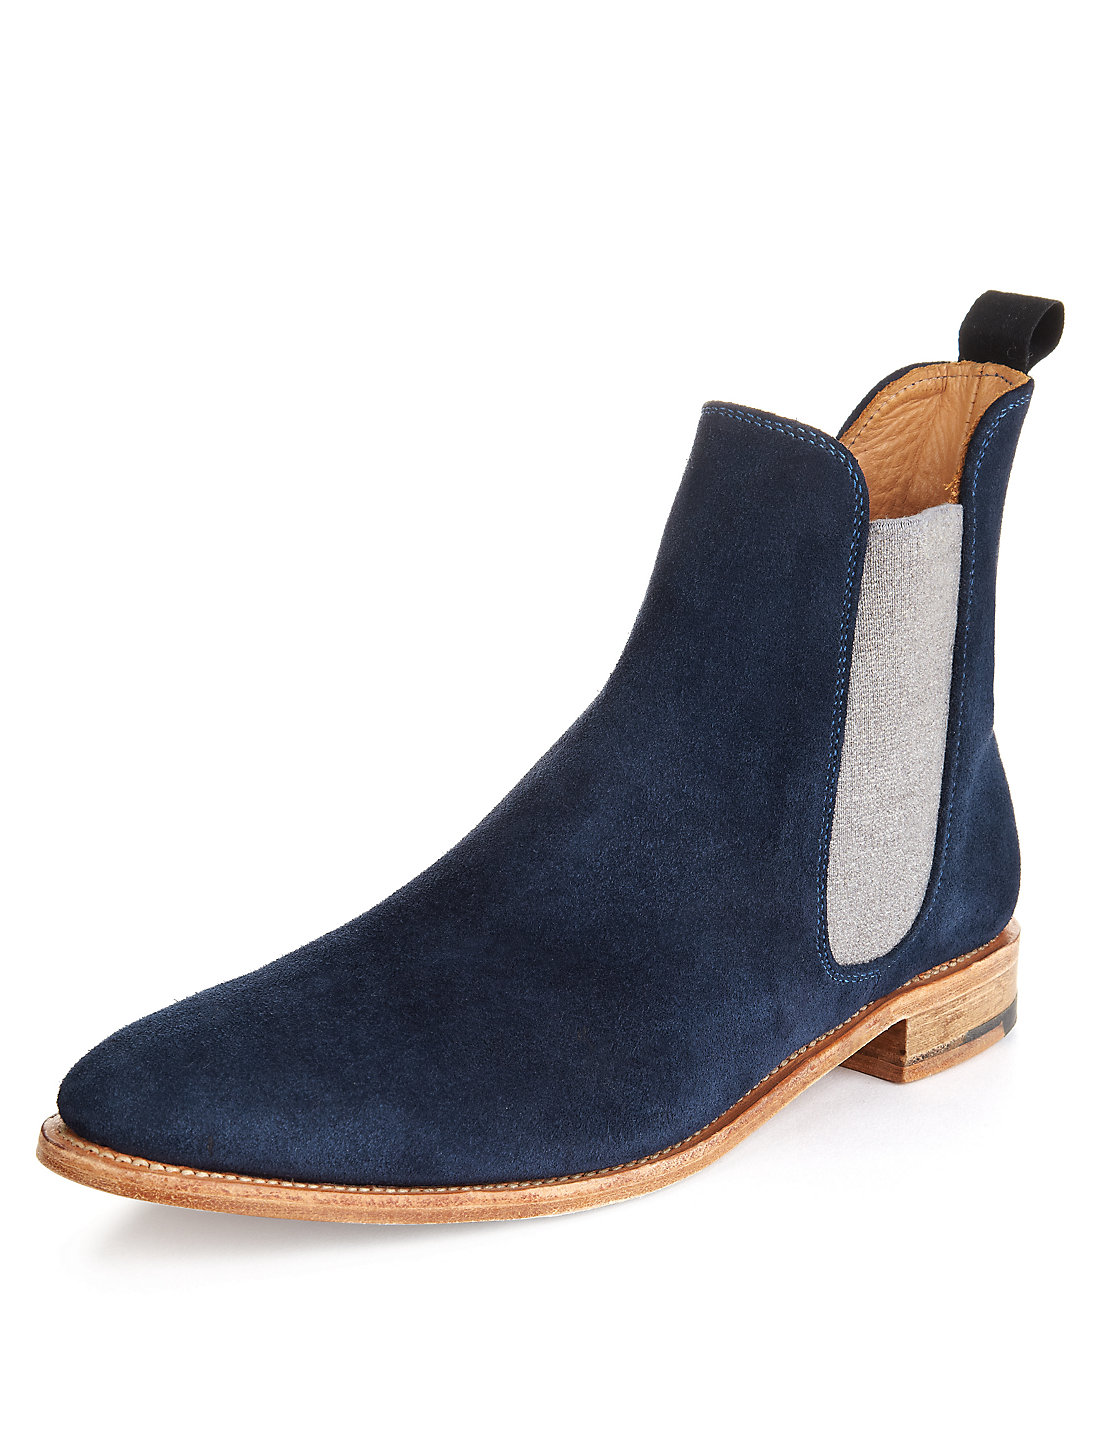 Handmade Mens Chelsea Boots, Men Fashion Blue Ankle-high Suede ...